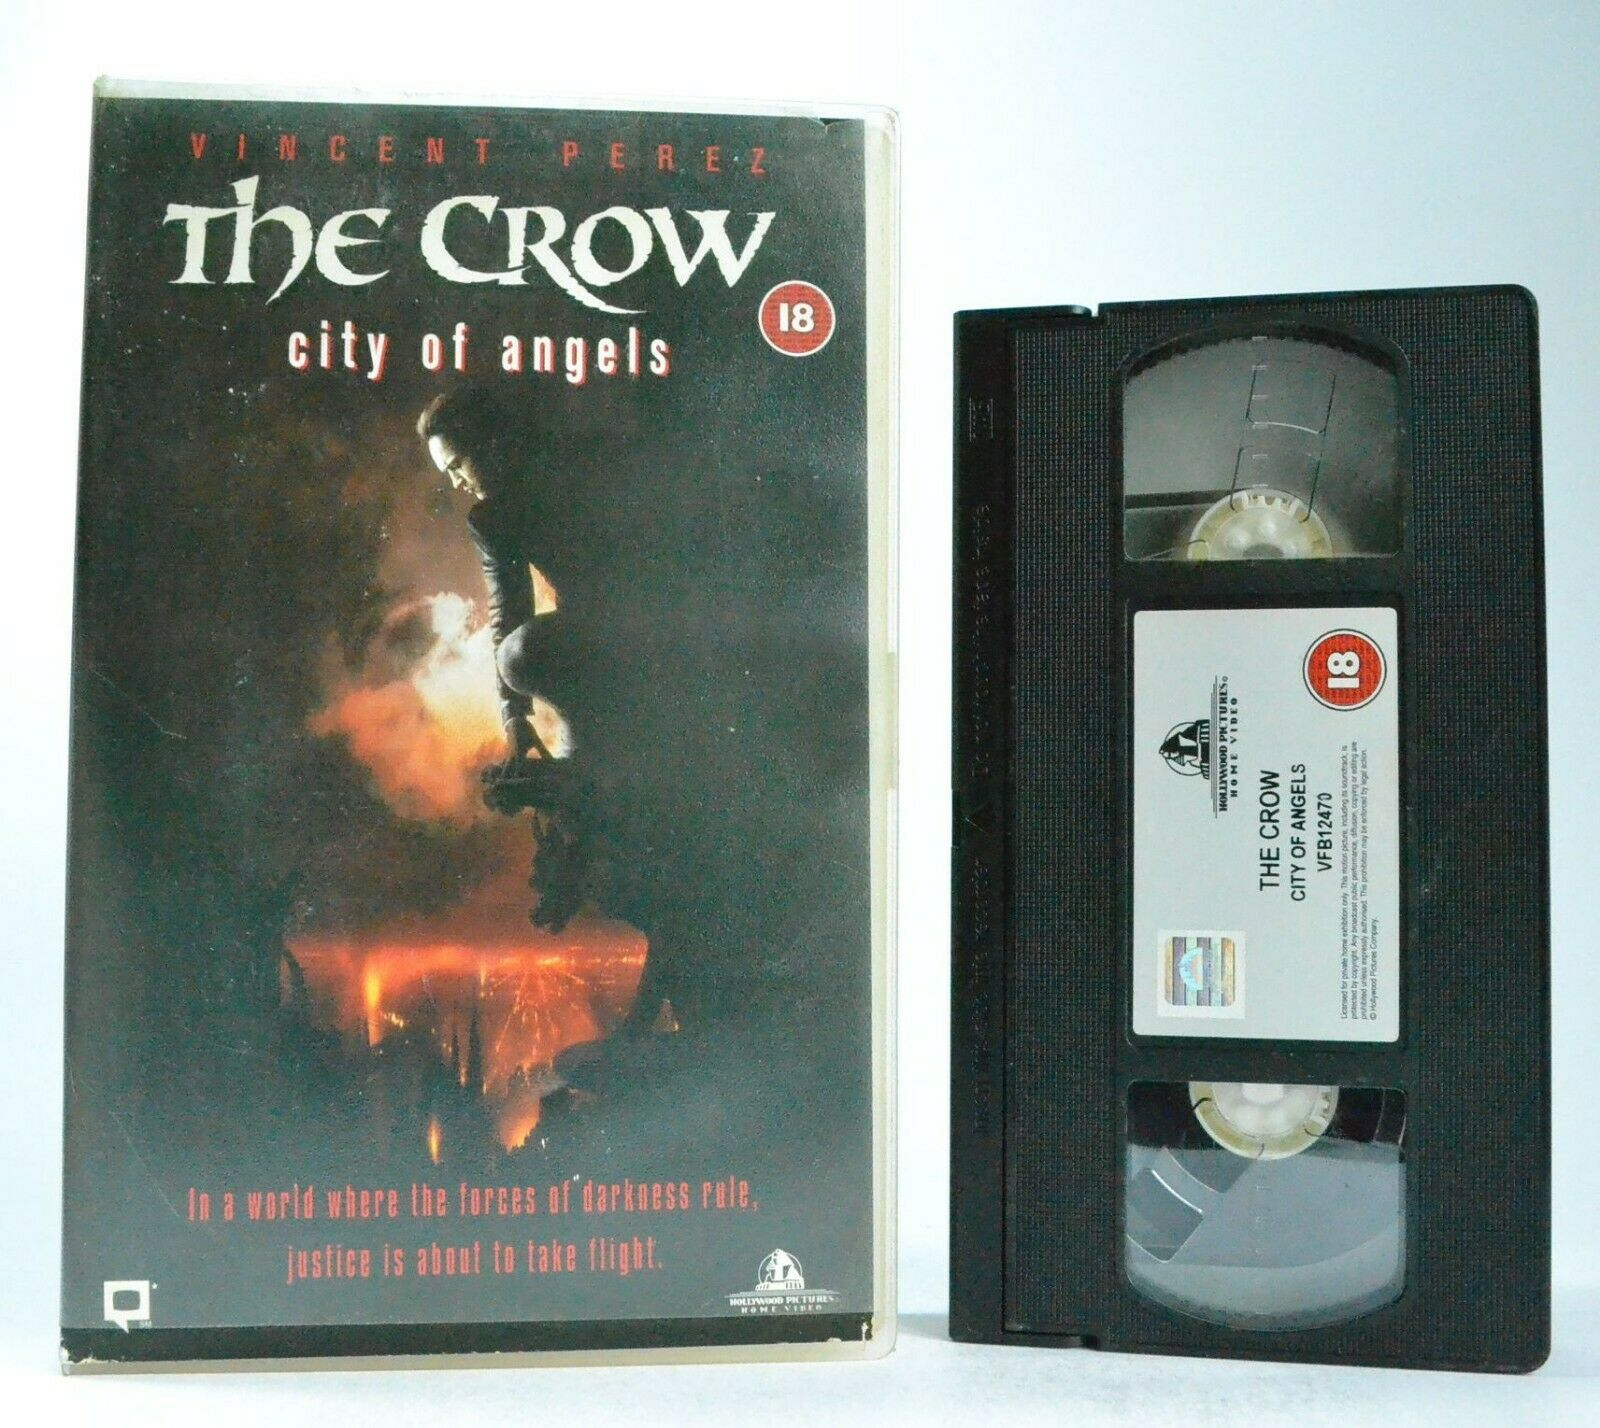 The Crow: City Of Angels - Based On J.O'Barr Comic Book - Sci-Fi/Fantasy - VHS